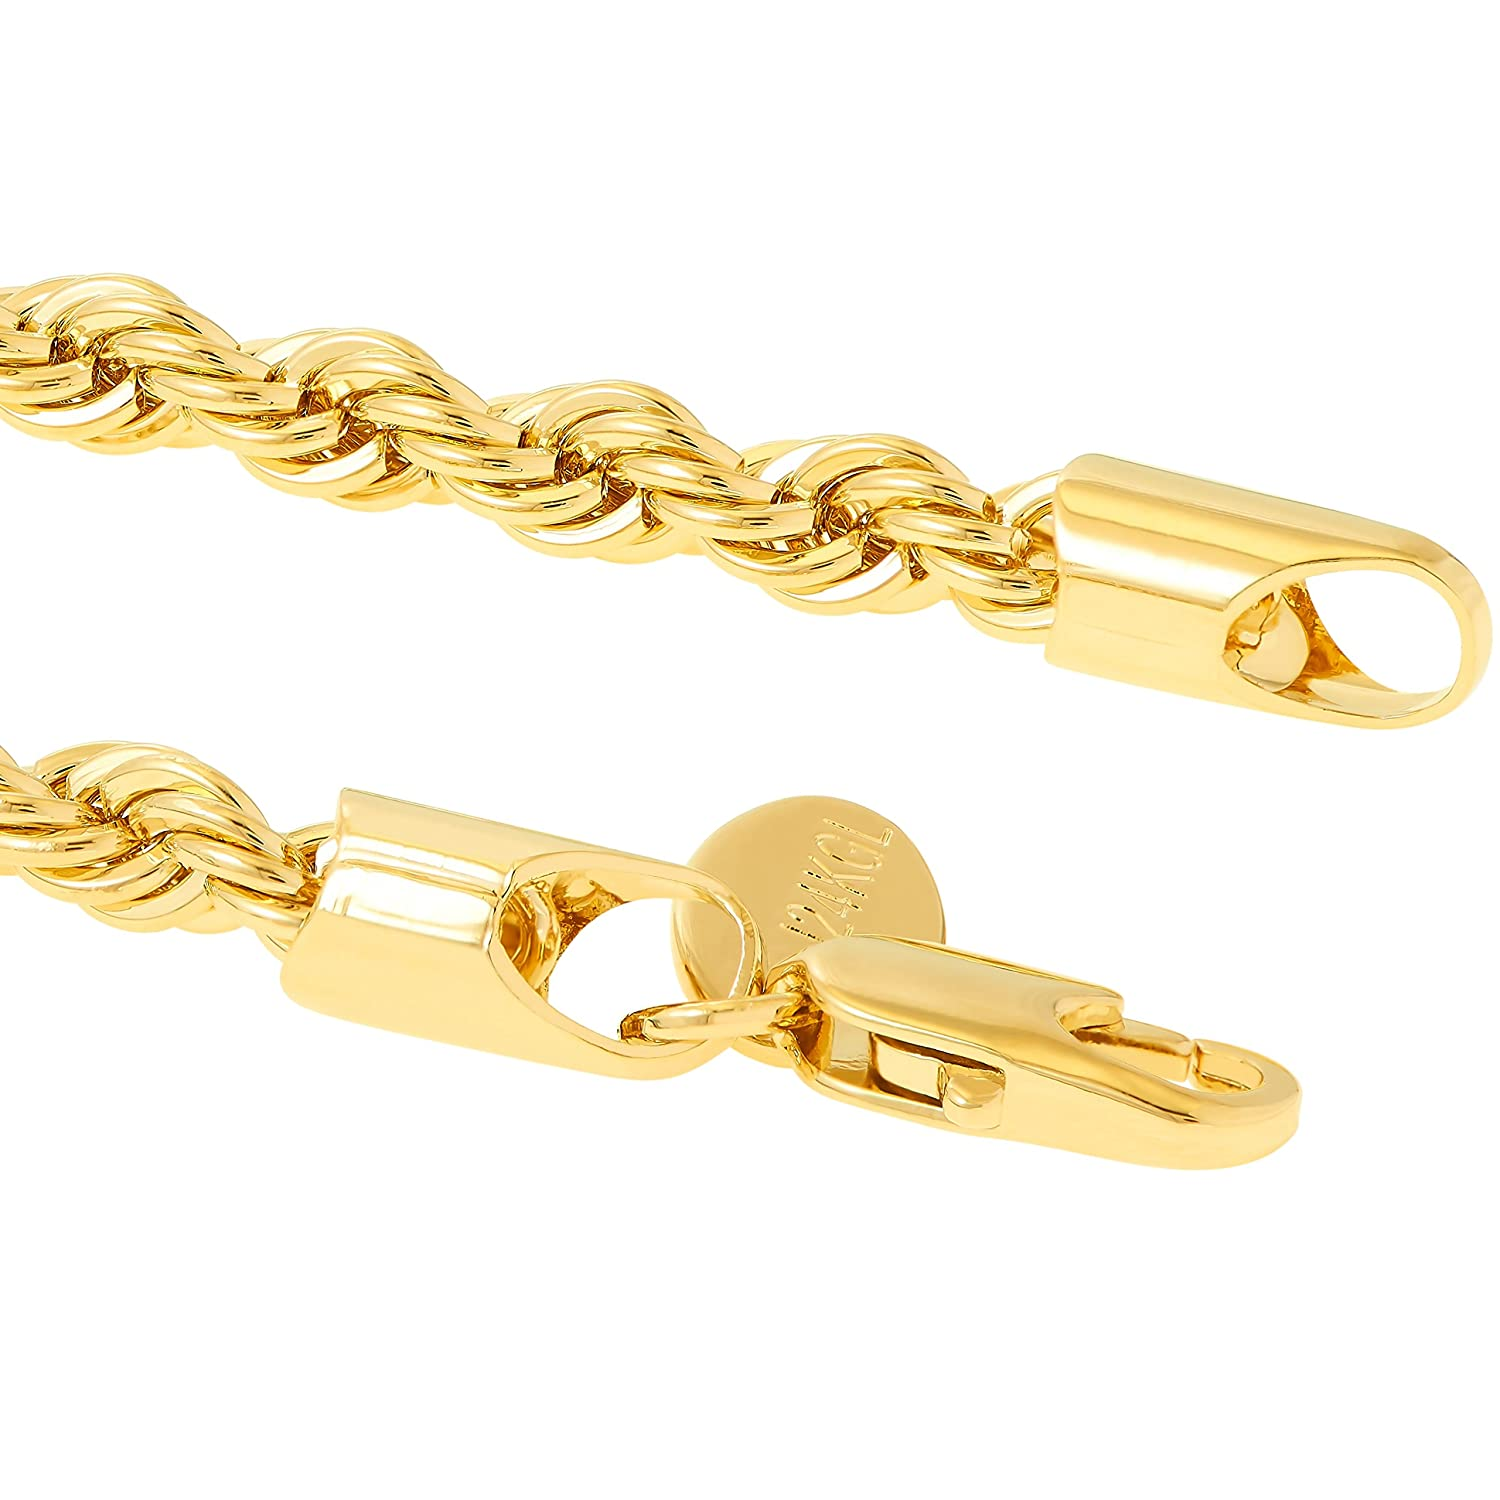 398c2ecd45aa8 Lifetime Jewelry 5mm Rope Chain Gold Bracelet for Men and Women - Up to 20X  More